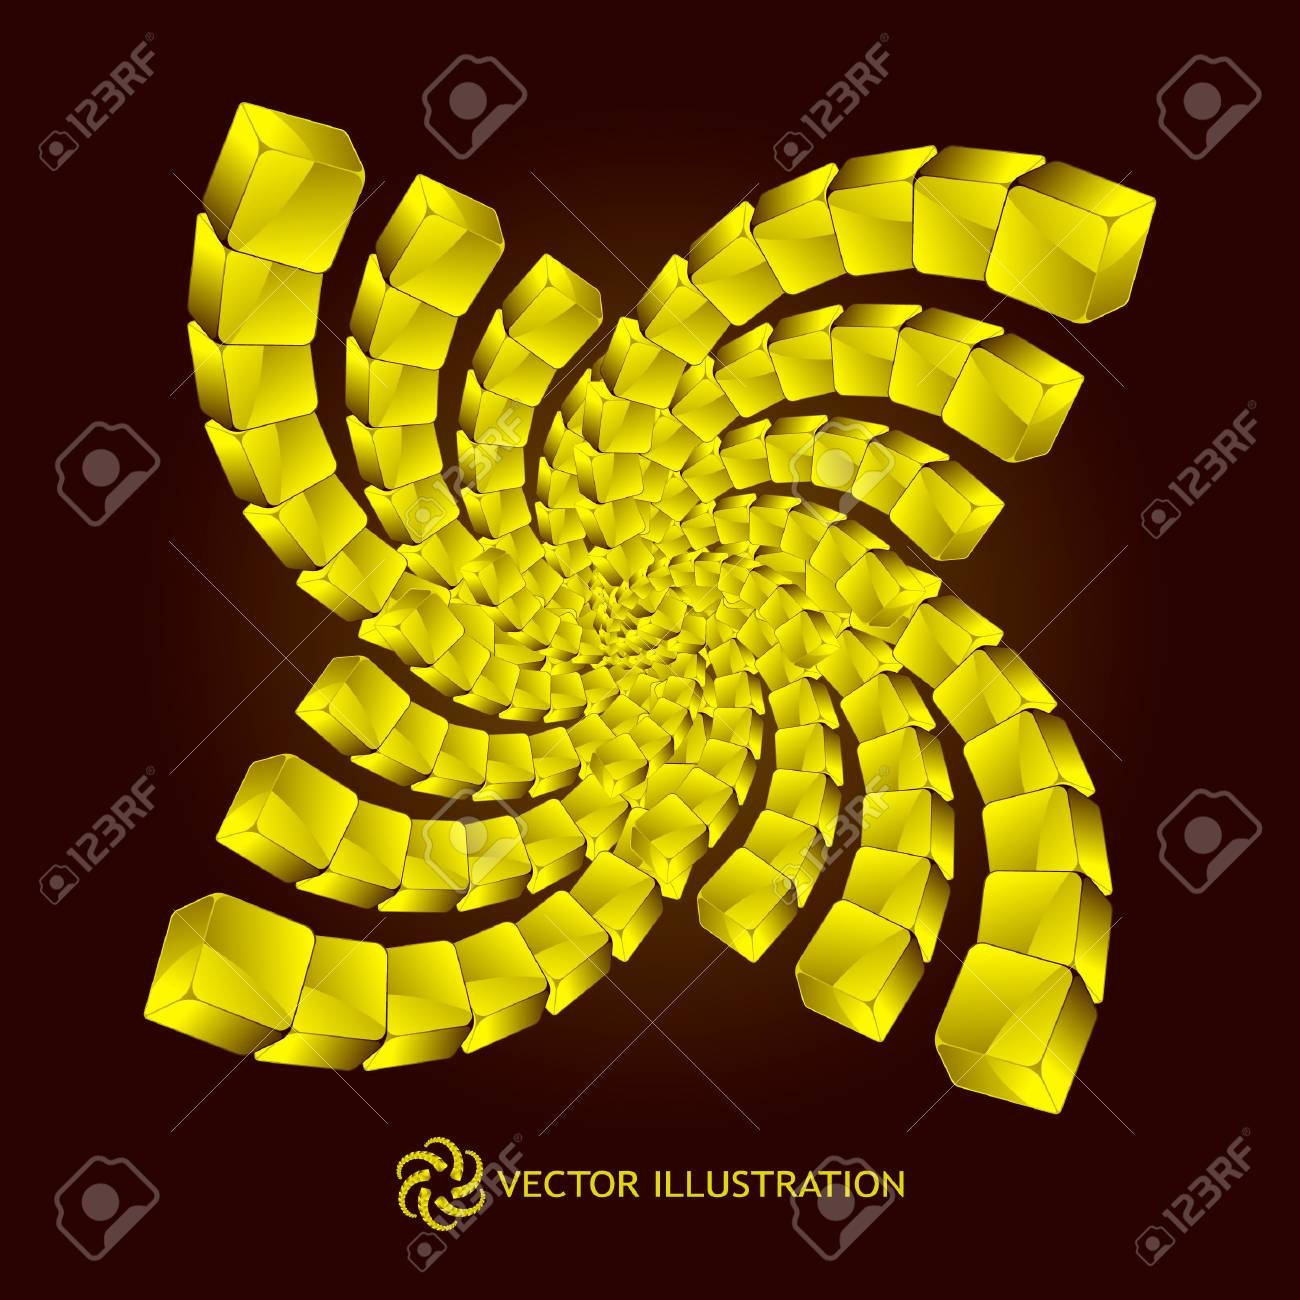 Abstract element with golden boxes Stock Photo - 8236874